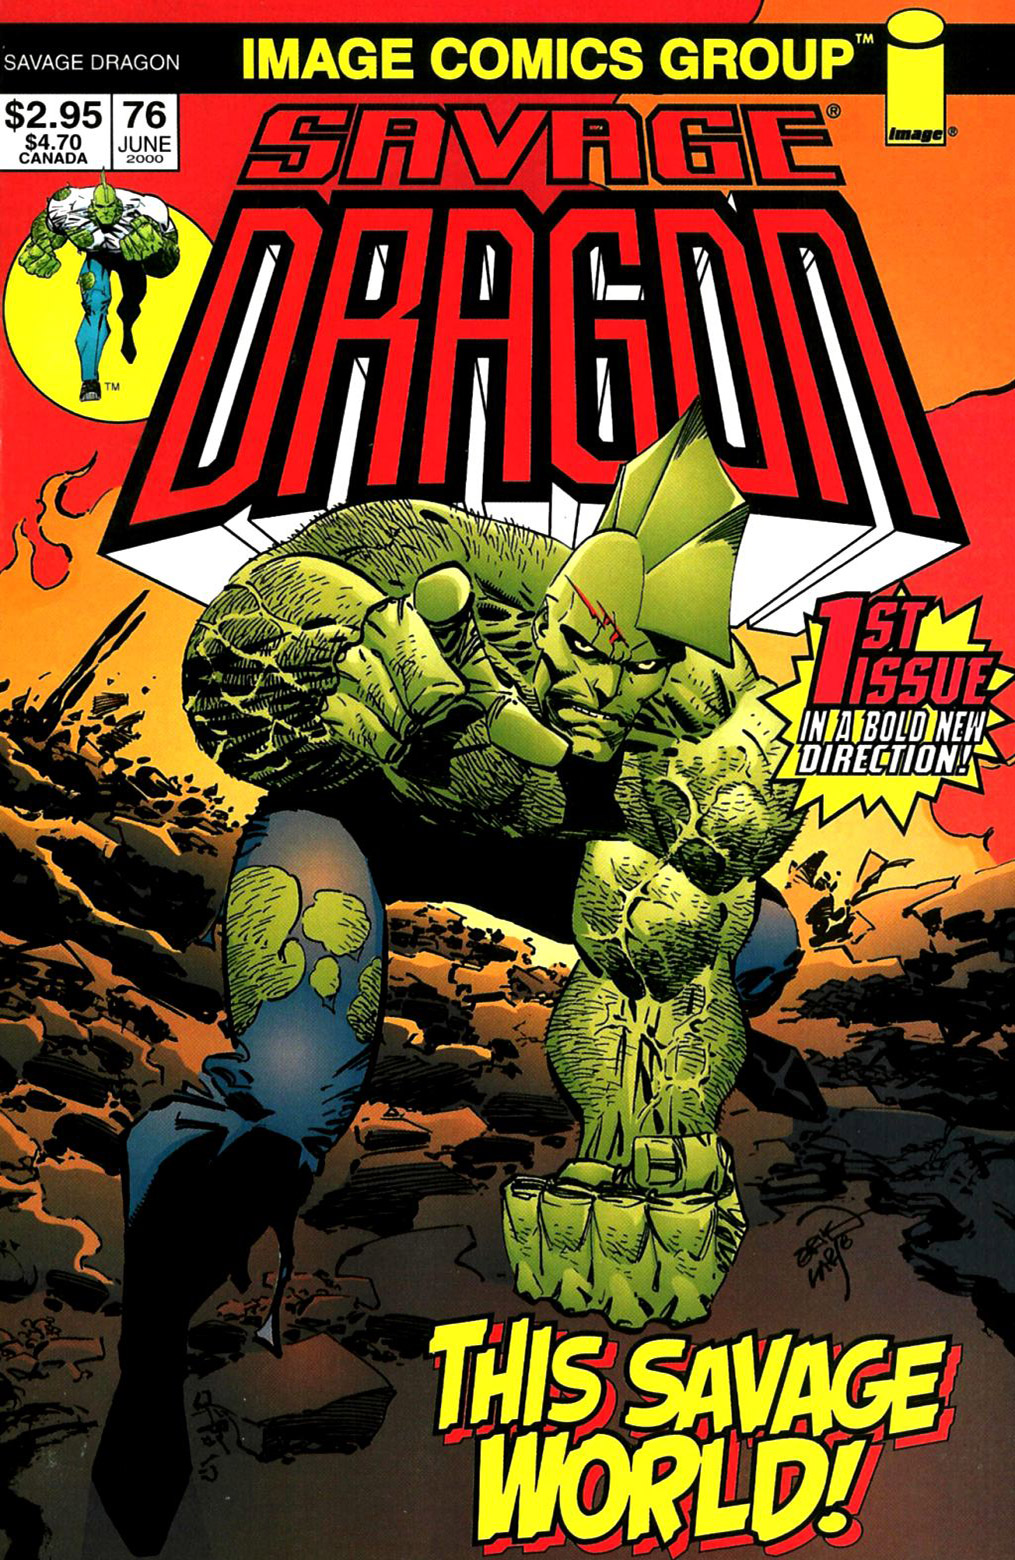 Cover Savage Dragon Vol.2 #76